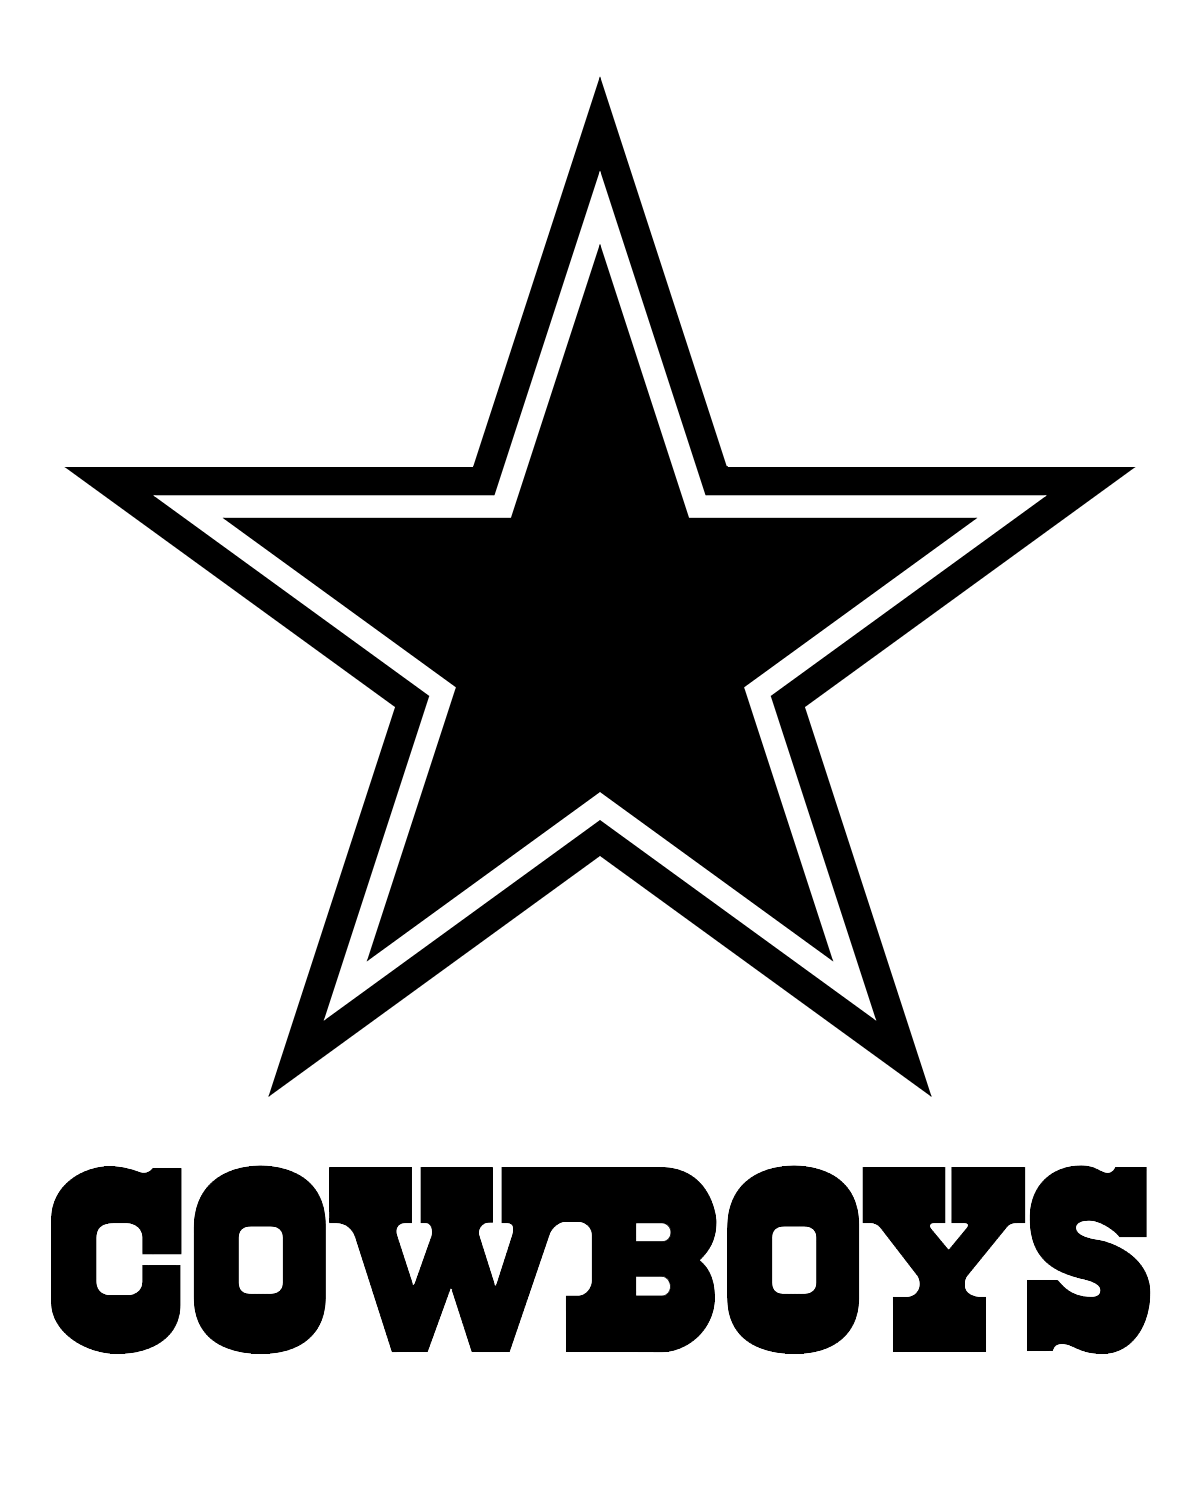 Dallas cowboys clipart text. Drawing at getdrawings com